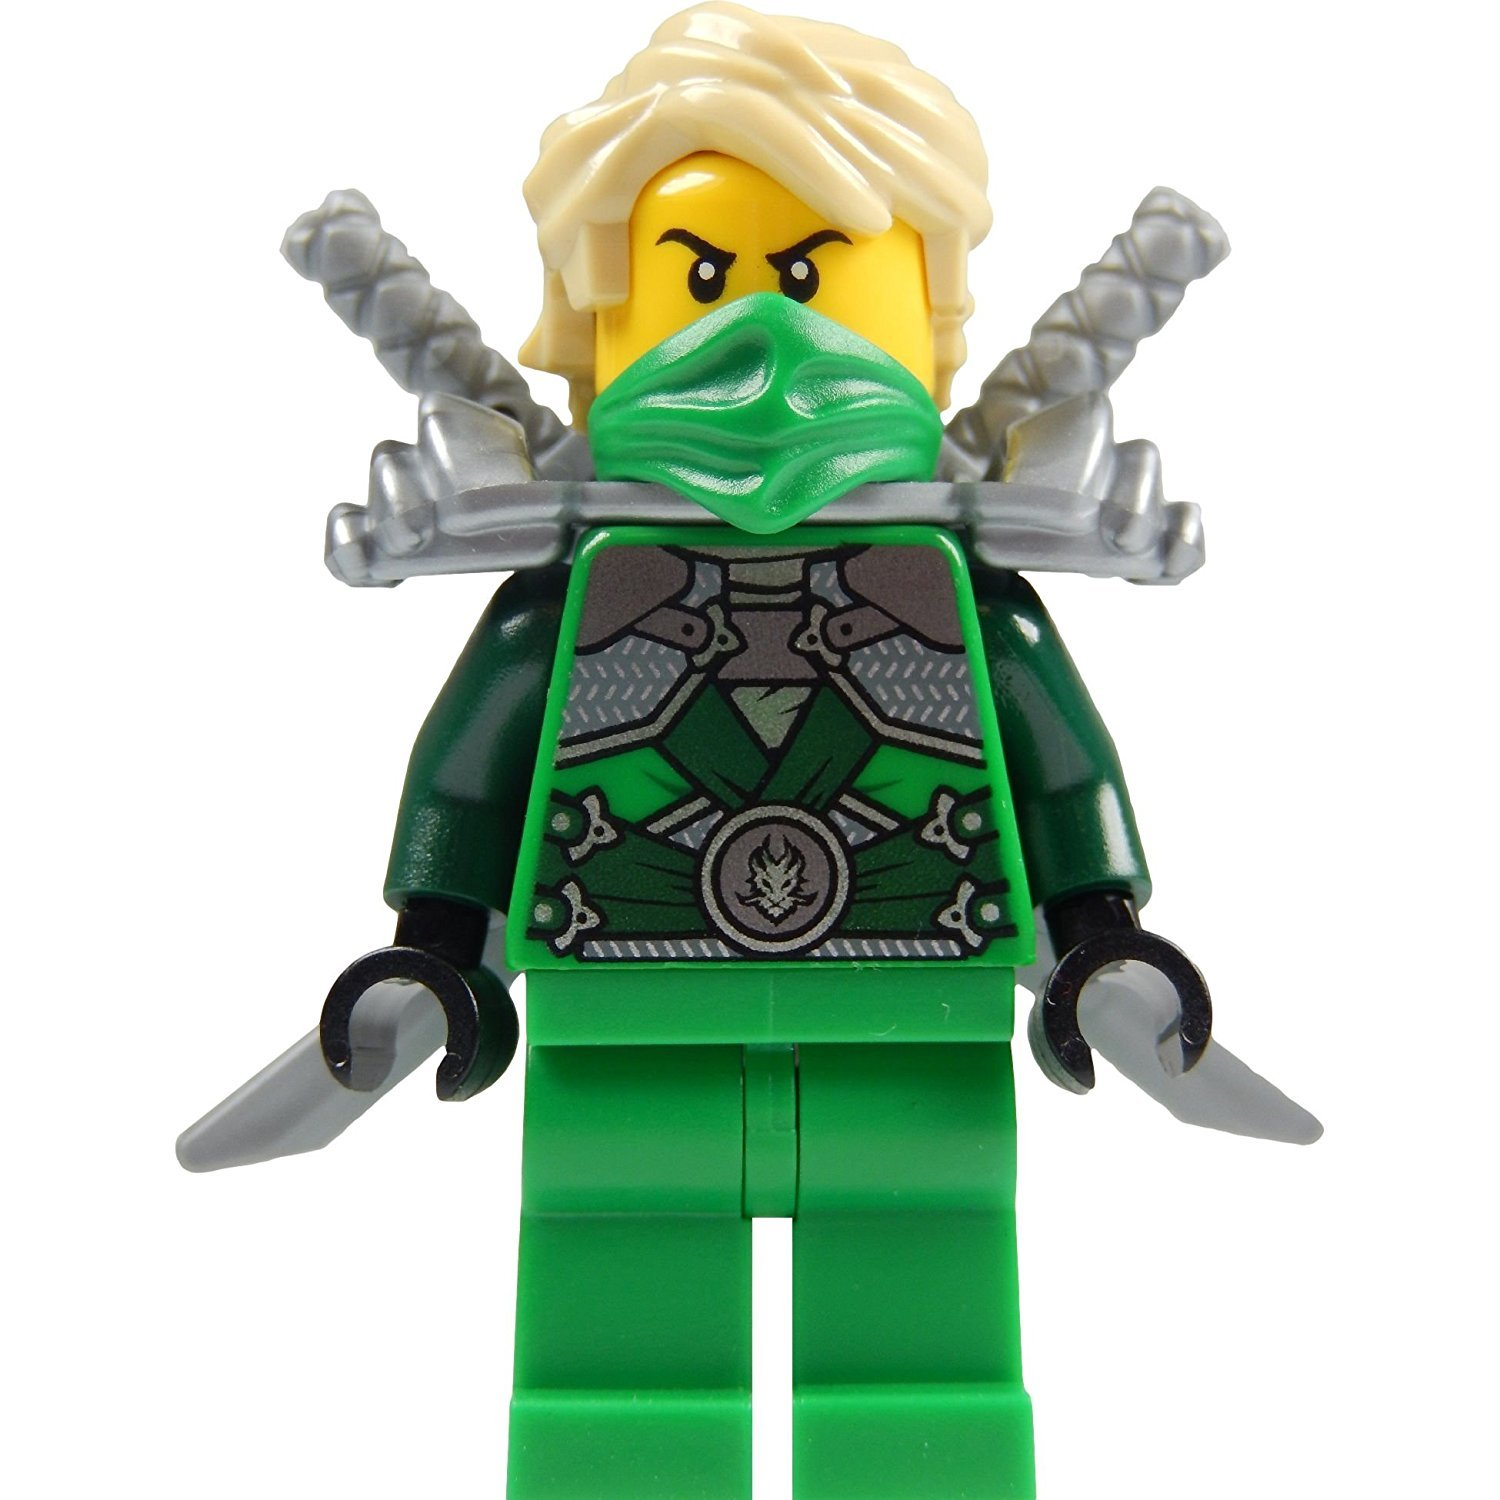 LEGO® Ninjago: Lloyd Garmadon (green ninja) Minifigure with shoulder armor and two katanas (swords) njo104